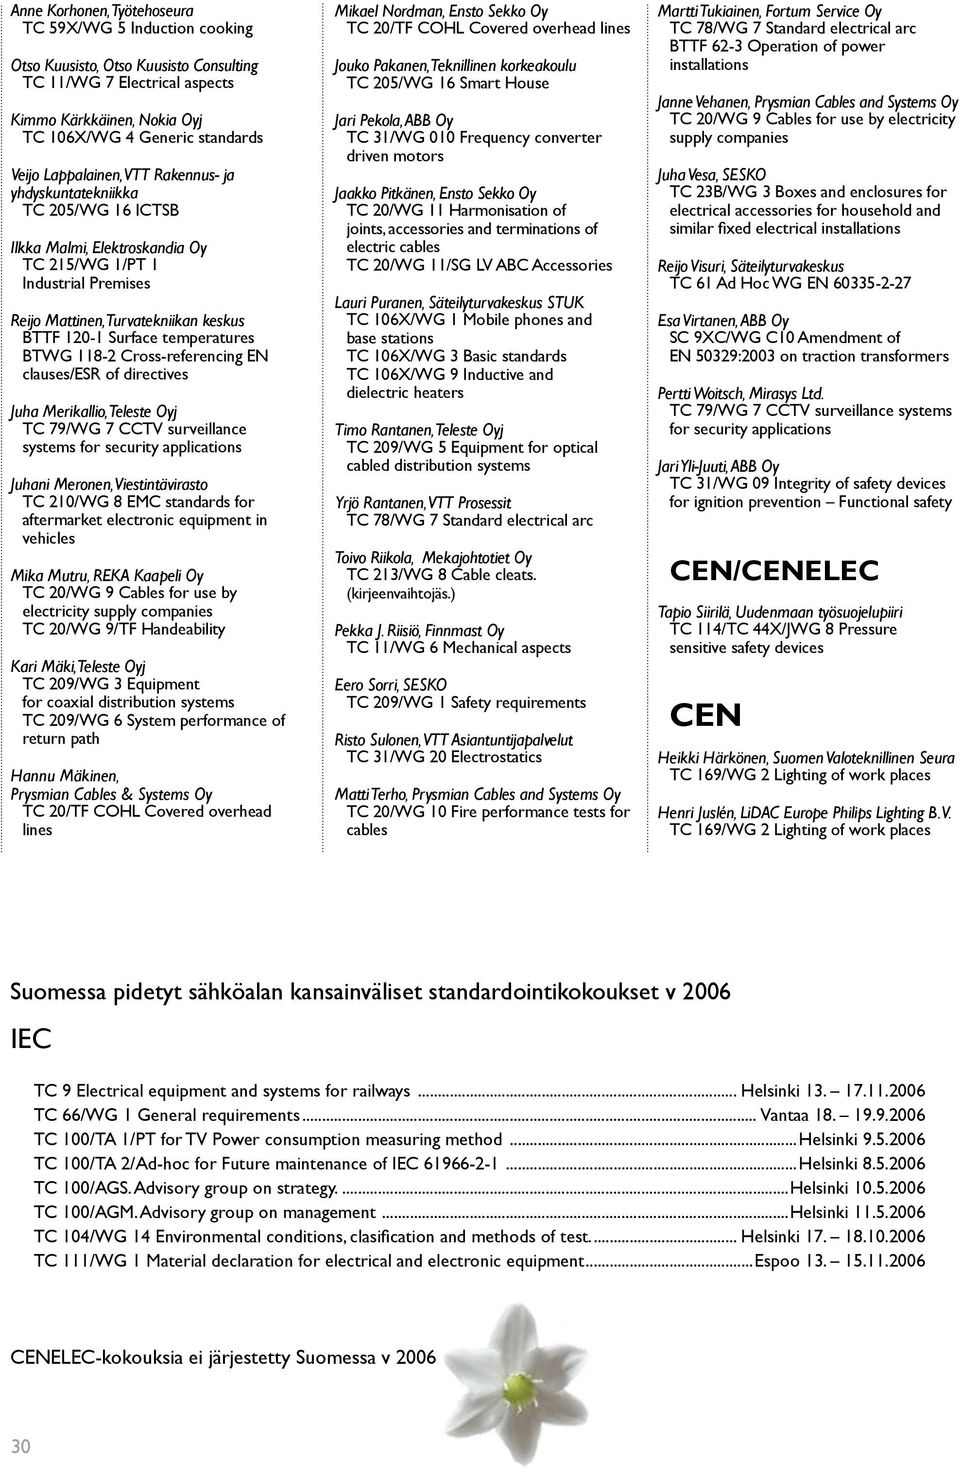 temperatures BTWG 118-2 Cross-referencing EN clauses/esr of directives Juha Merikallio, Teleste Oyj TC 79/WG 7 CCTV surveillance systems for security applications Juhani Meronen, Viestintävirasto TC